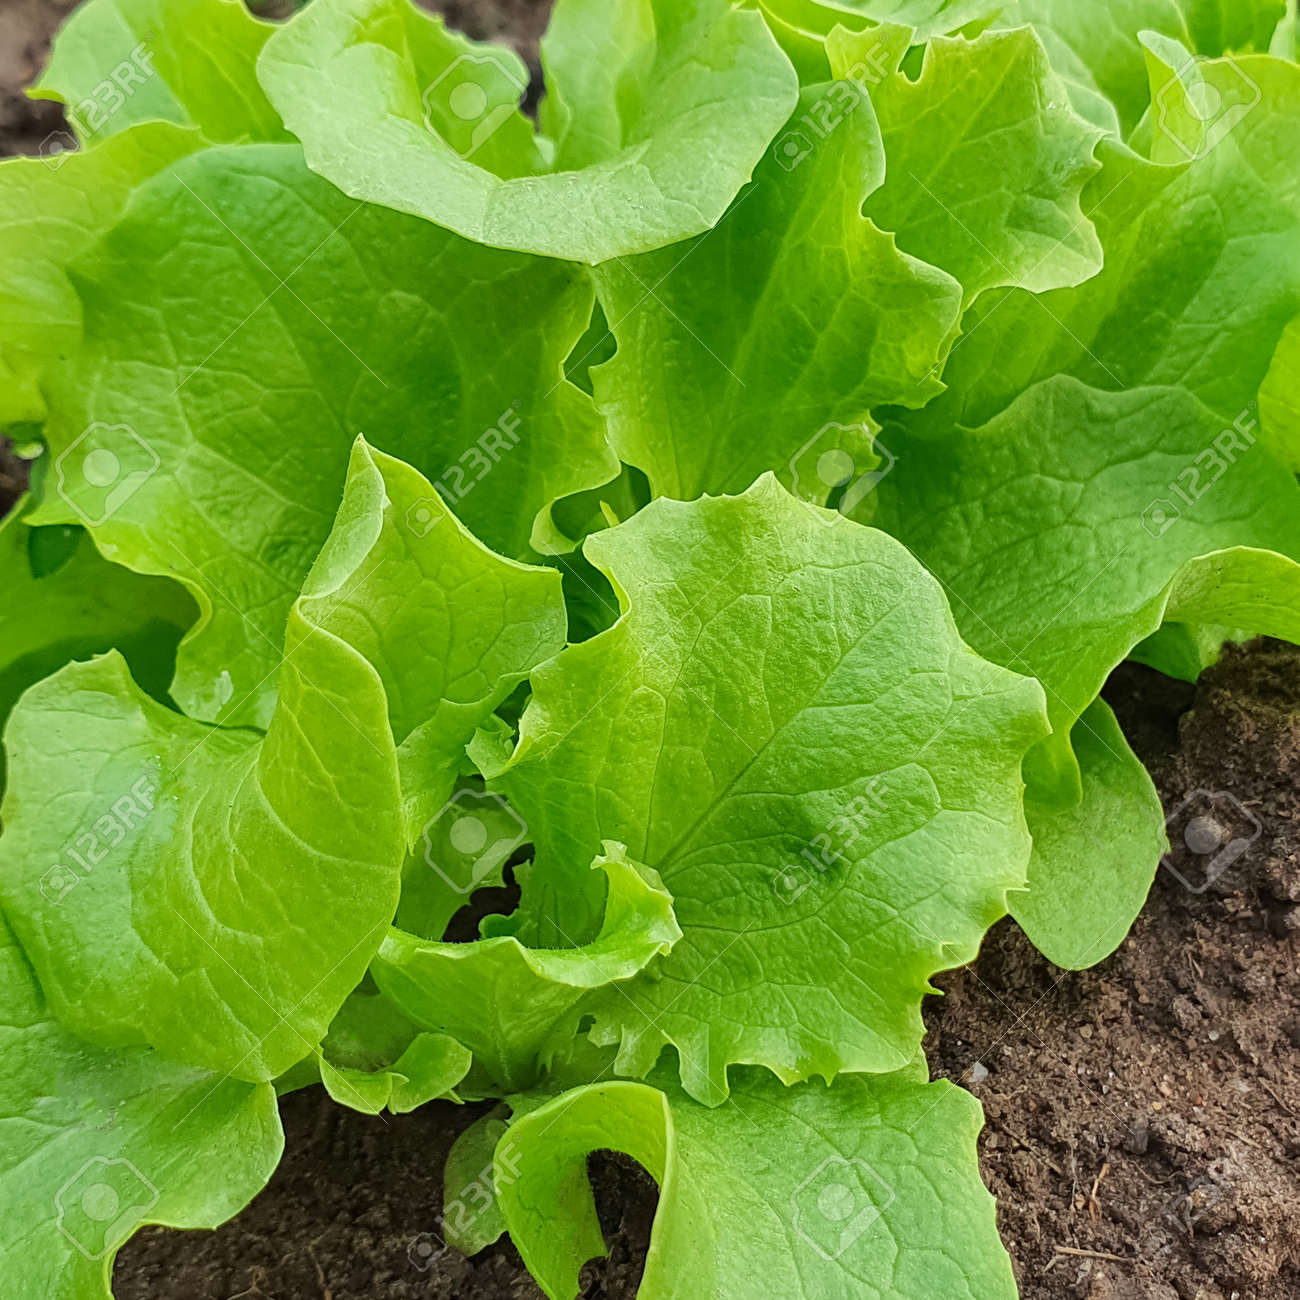 Concept of gardening eco friendly organic fresch lettuce leaves growing in the garden. Copy space, green background - 164076171